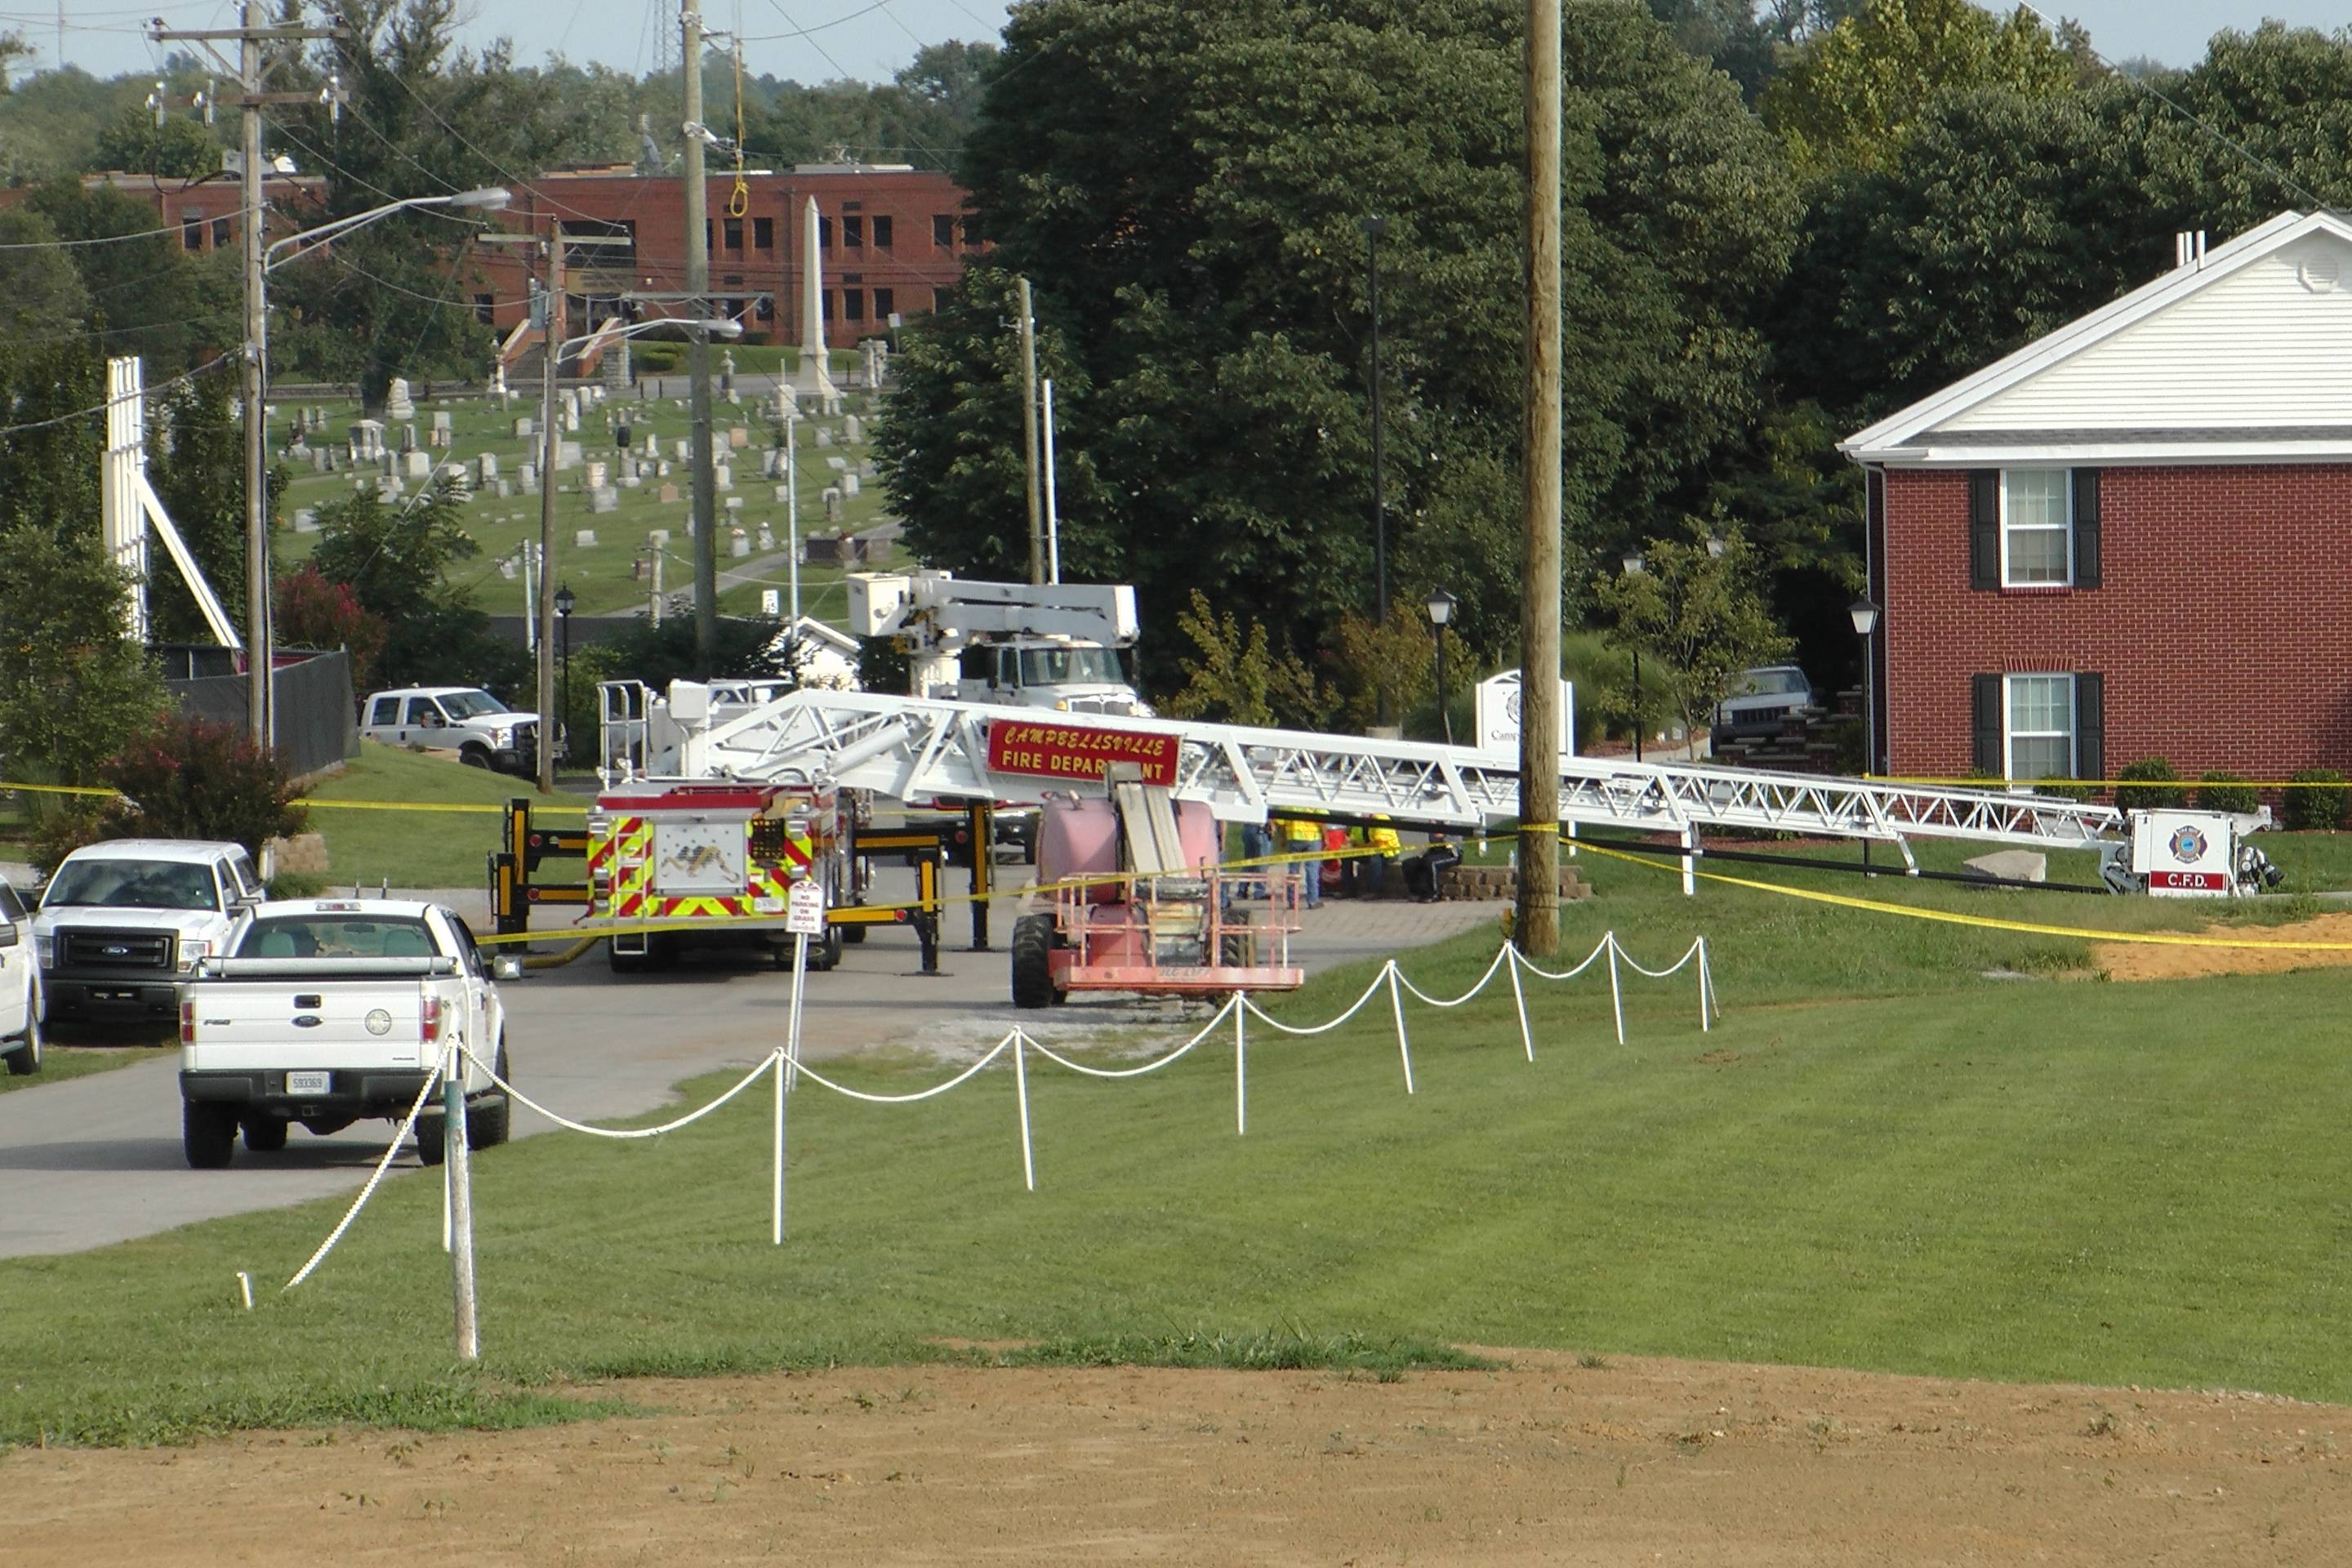 A Campbellsville Fire Department truck with the ladder extended remained at the scene where two firefighters were injured during an ice bucket challenge during a fundraiser for ALS on Thursday, Aug. 21, 2014, in Campbellsville, Ky. Officials say the ladder got too close to a power line and electricity traveled to the ladder, electrocuting the firefighters.